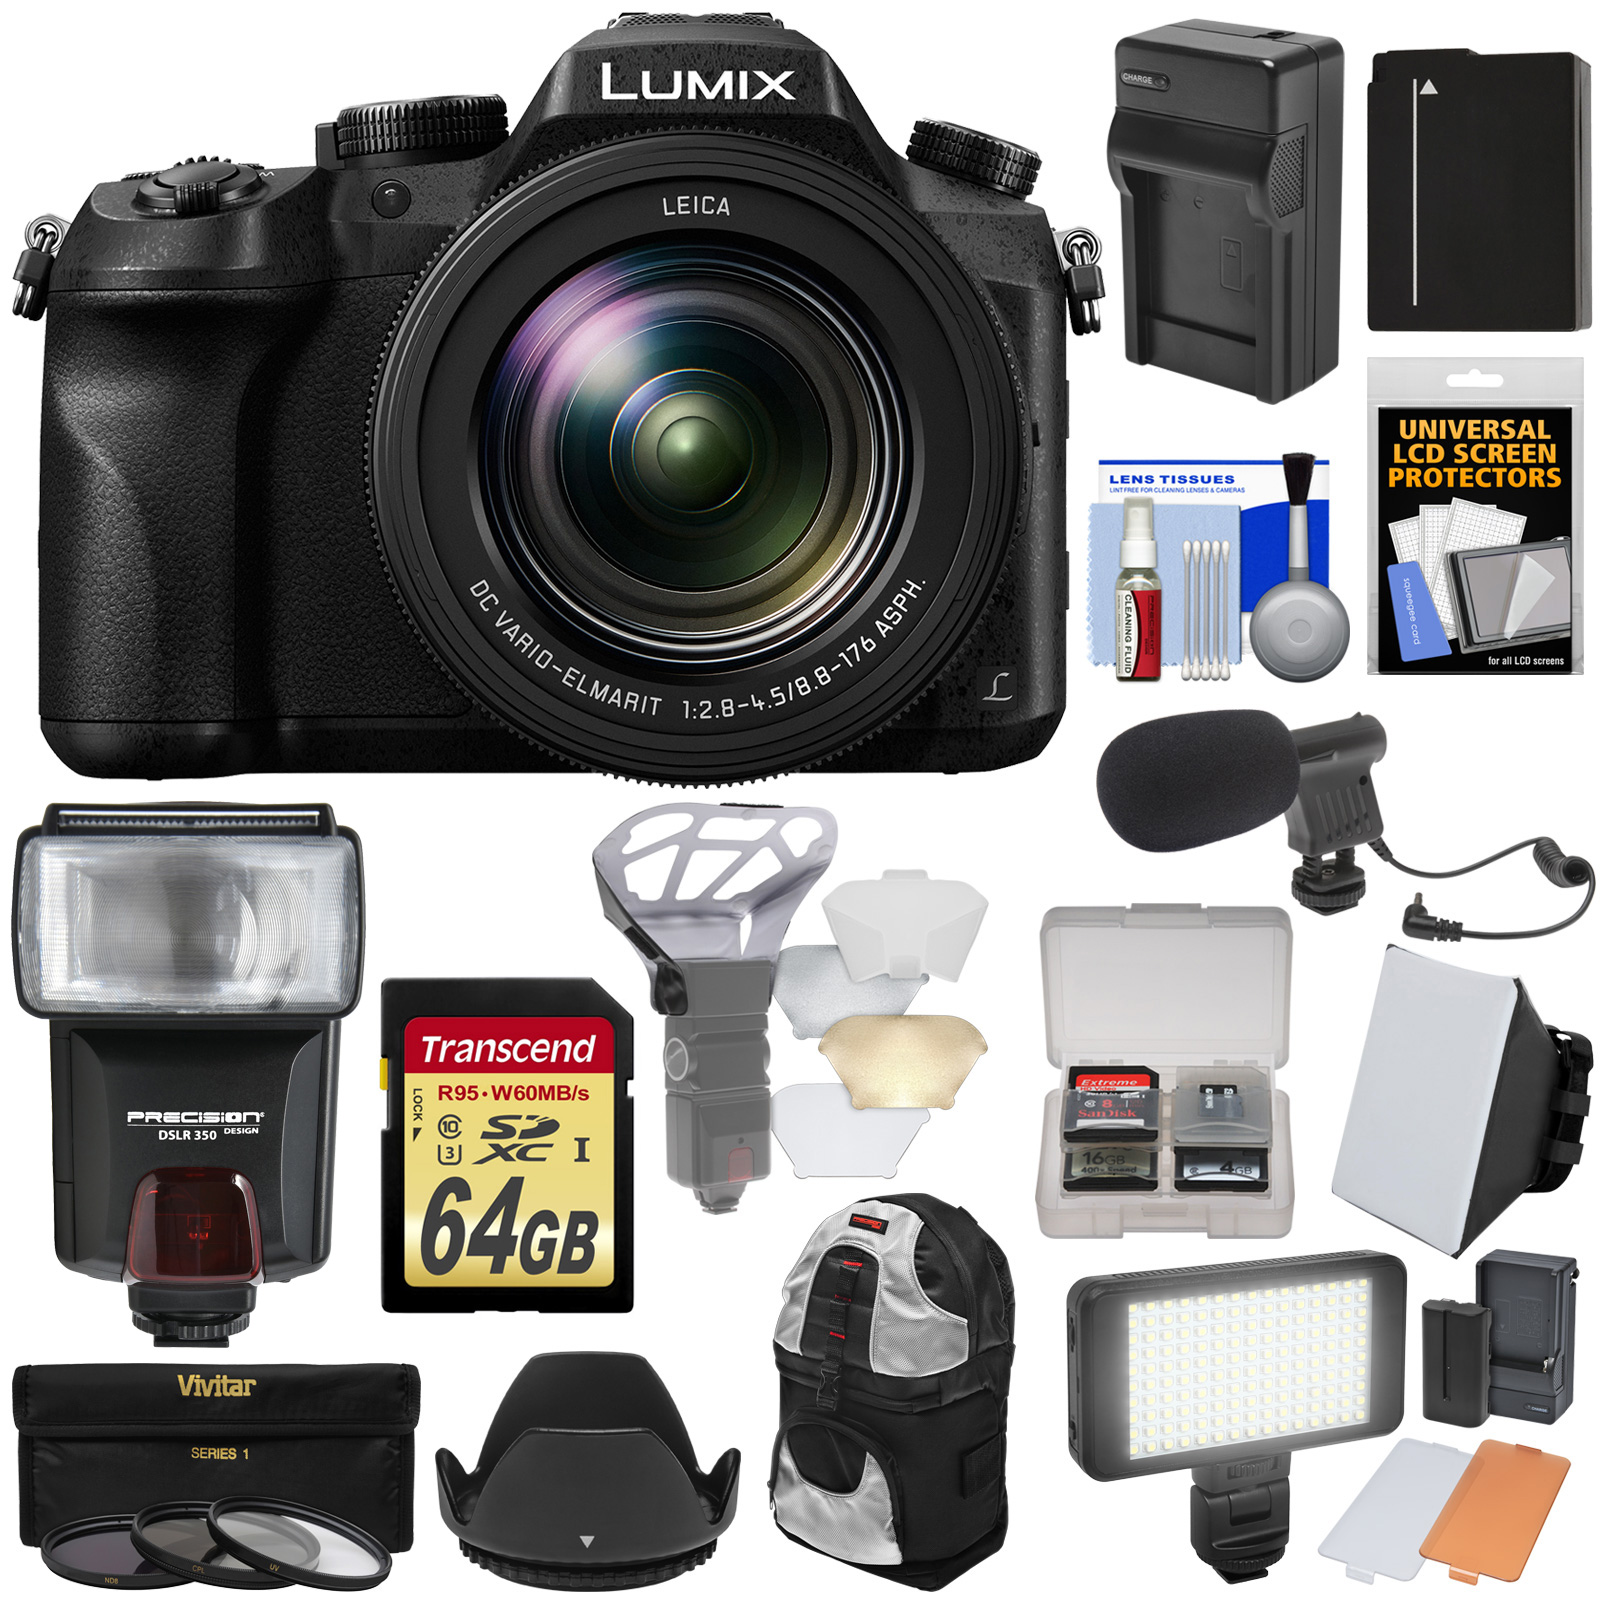 Panasonic Lumix DMC-FZ2500 4K Wi-Fi Digital Camera with 64GB Card + Battery & Charger + Backpack + Flash + Soft Box + LED Light + Mic + Kit